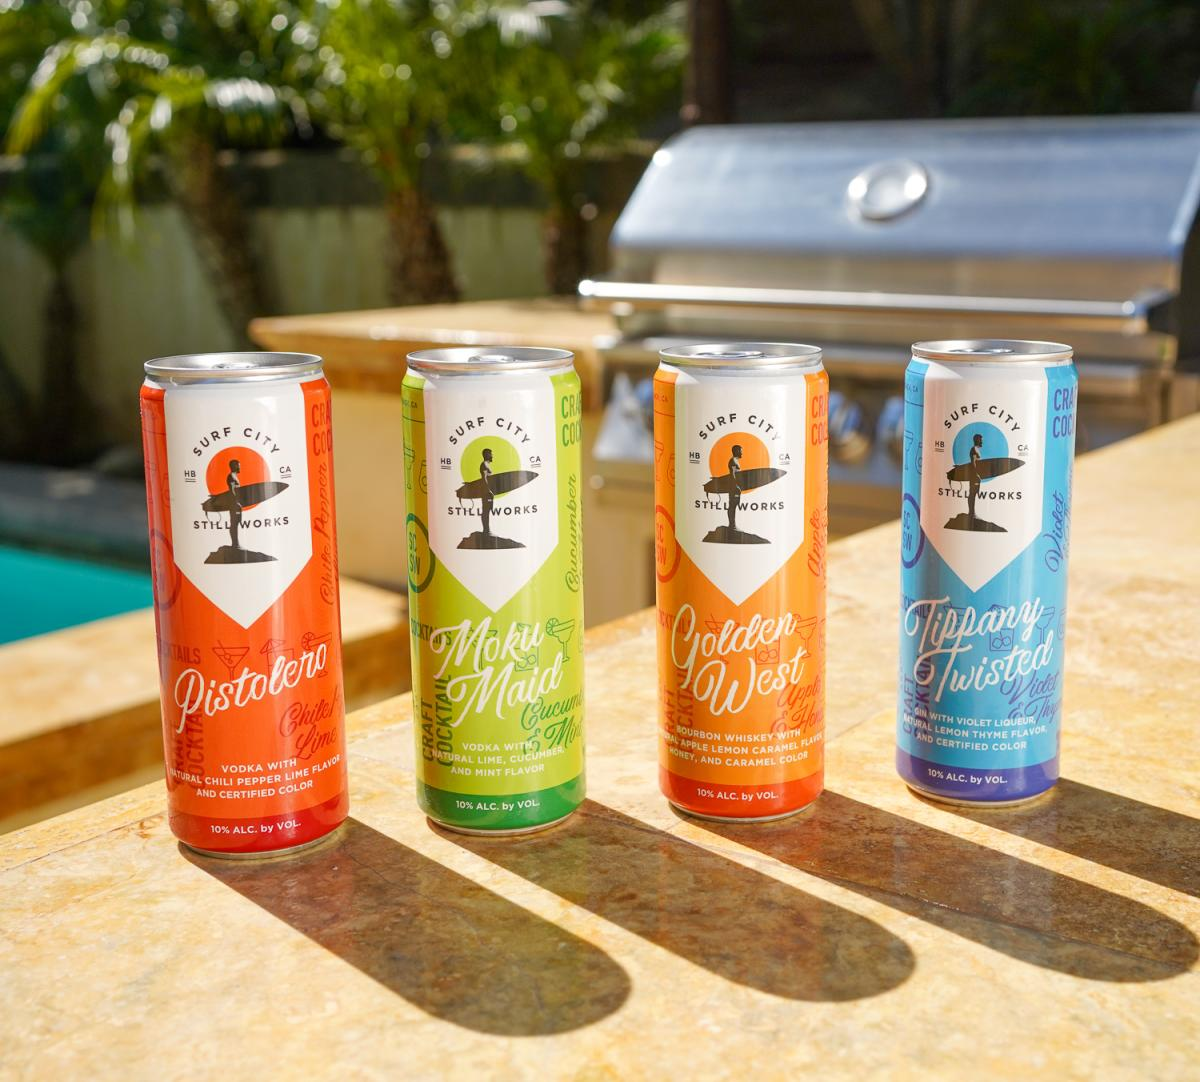 Surf City Still Works Canned Cocktails